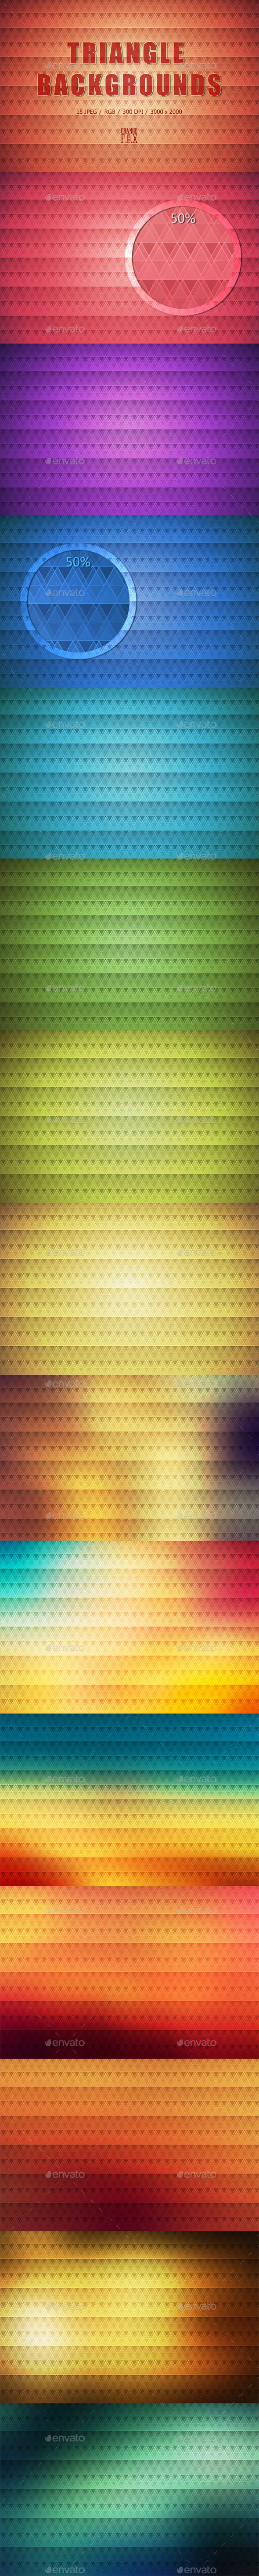 15 Triangle Backgrounds #graphic #background  #texture  #download #pattern #wallpaper  #pixelated #abstract #clean geometric #geo